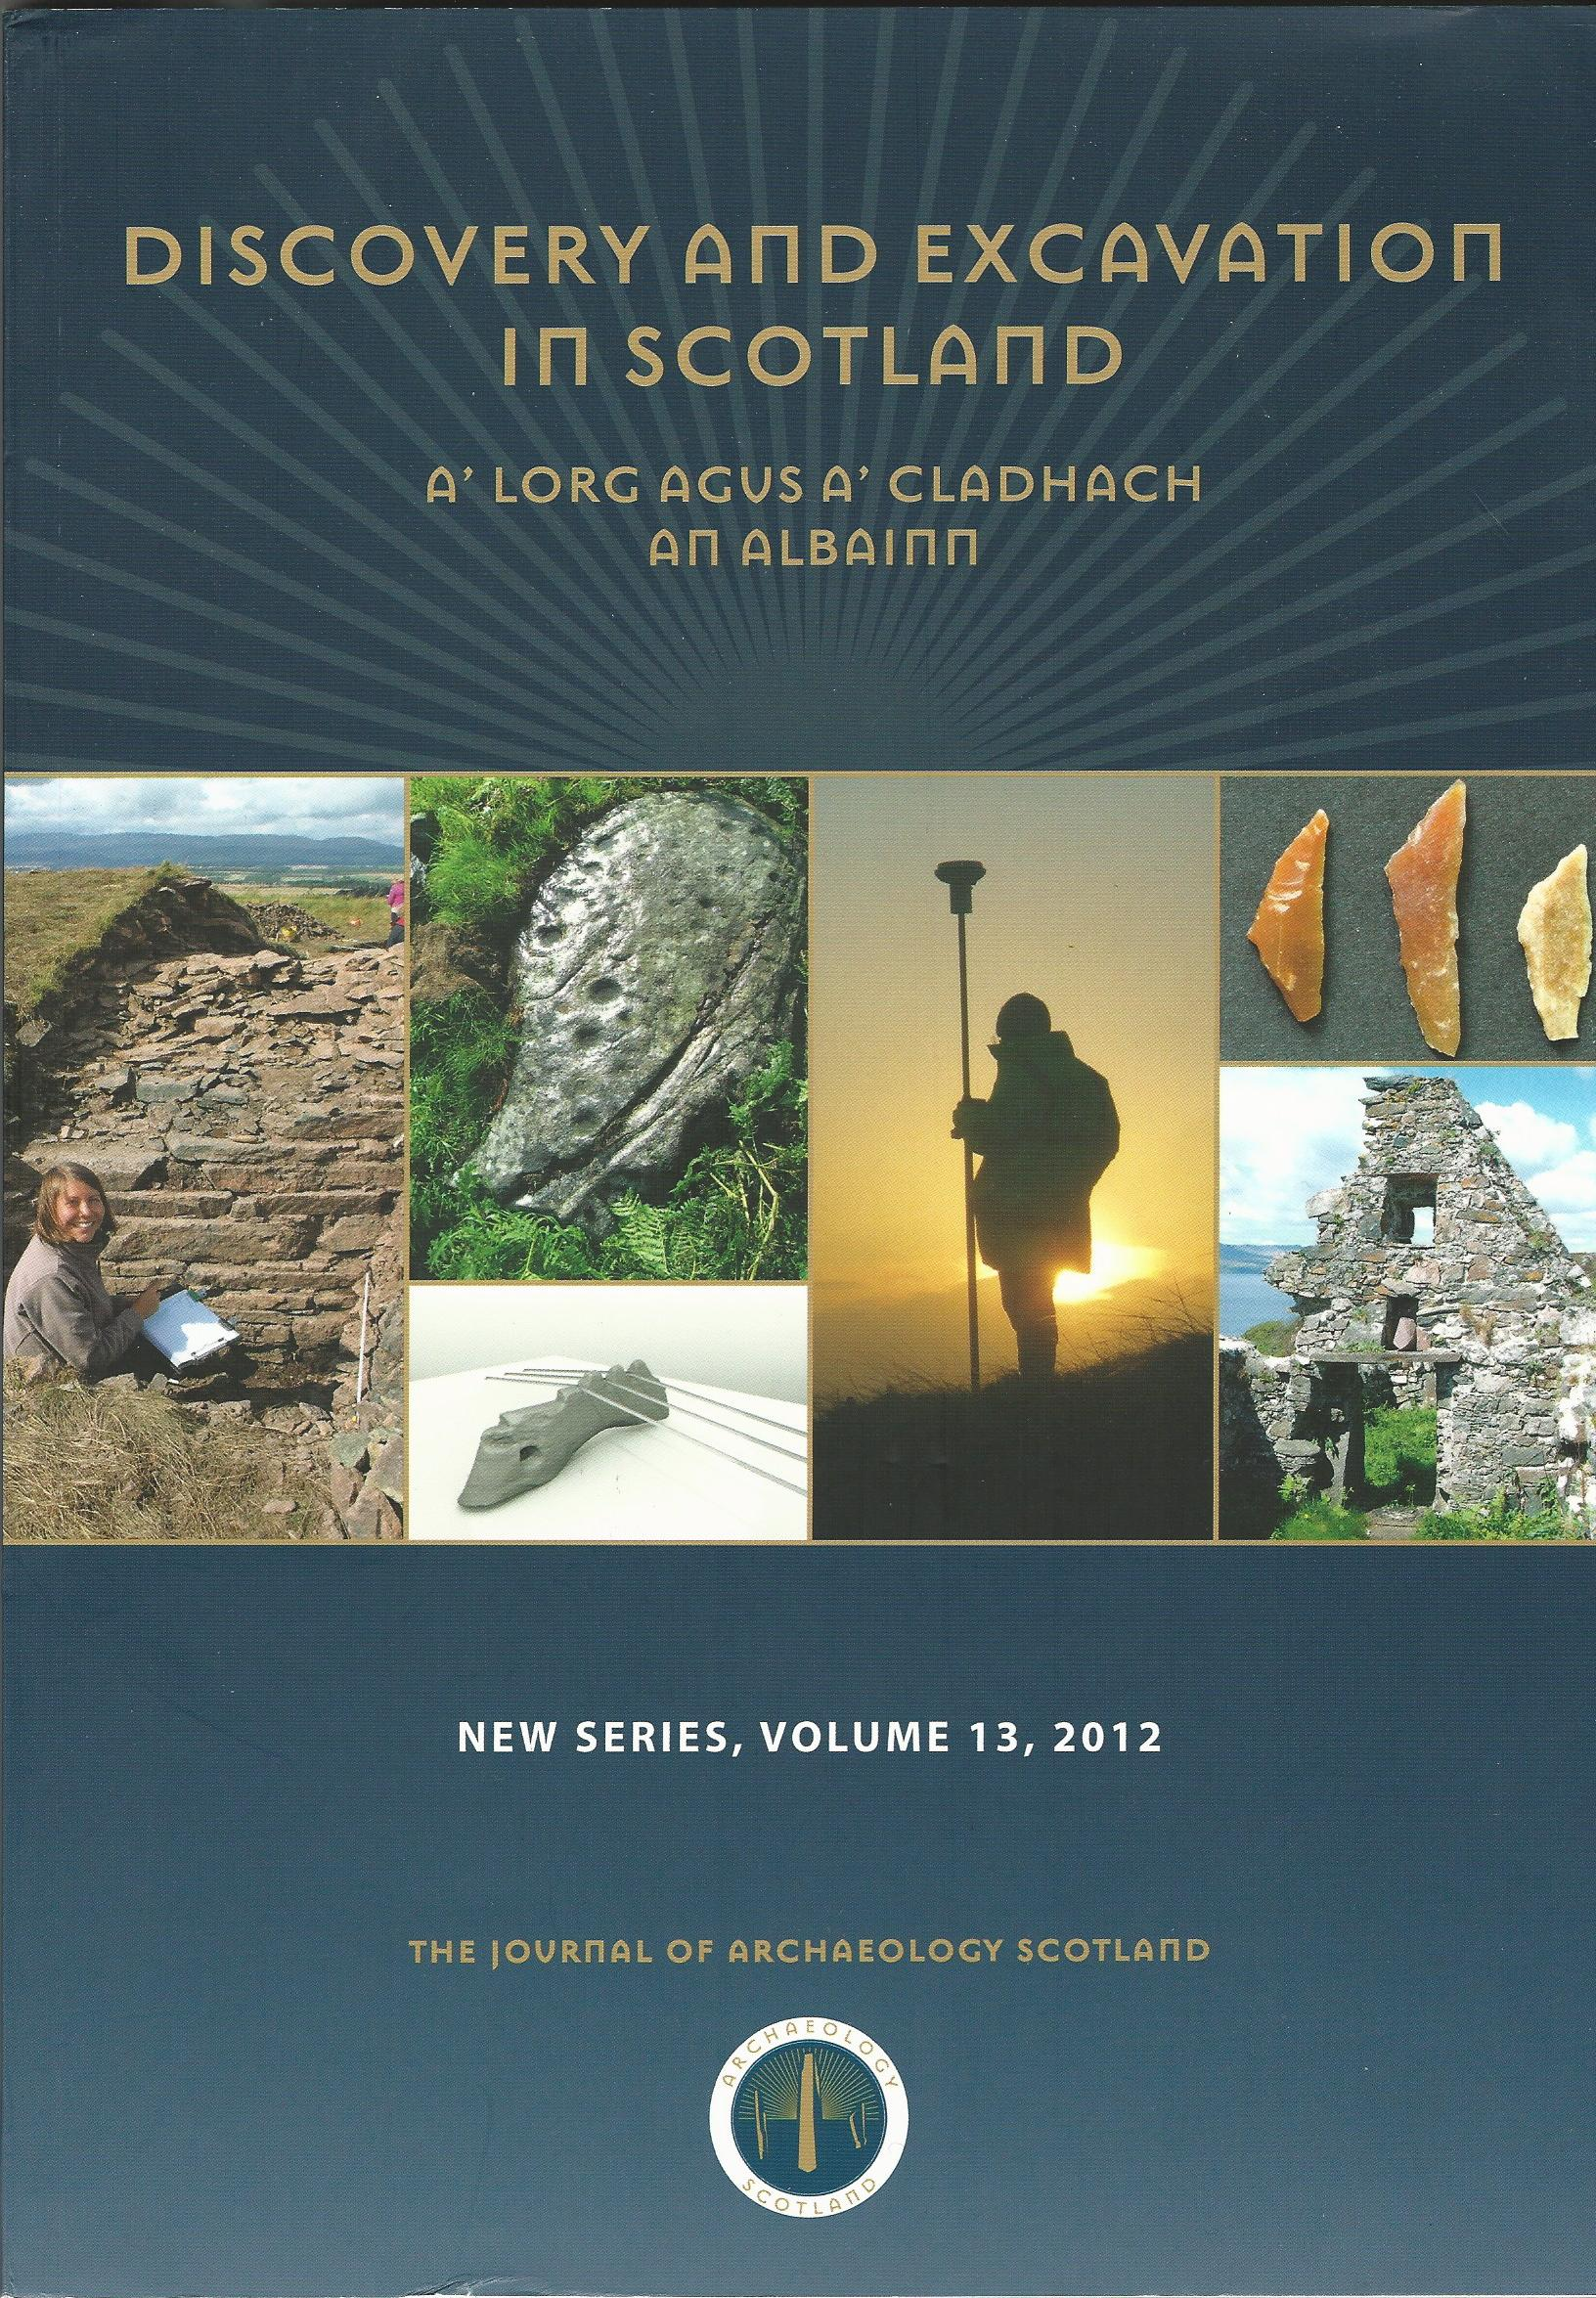 Image for Discovery and Excavation in Scotland, New Series, Volume 13, 2012